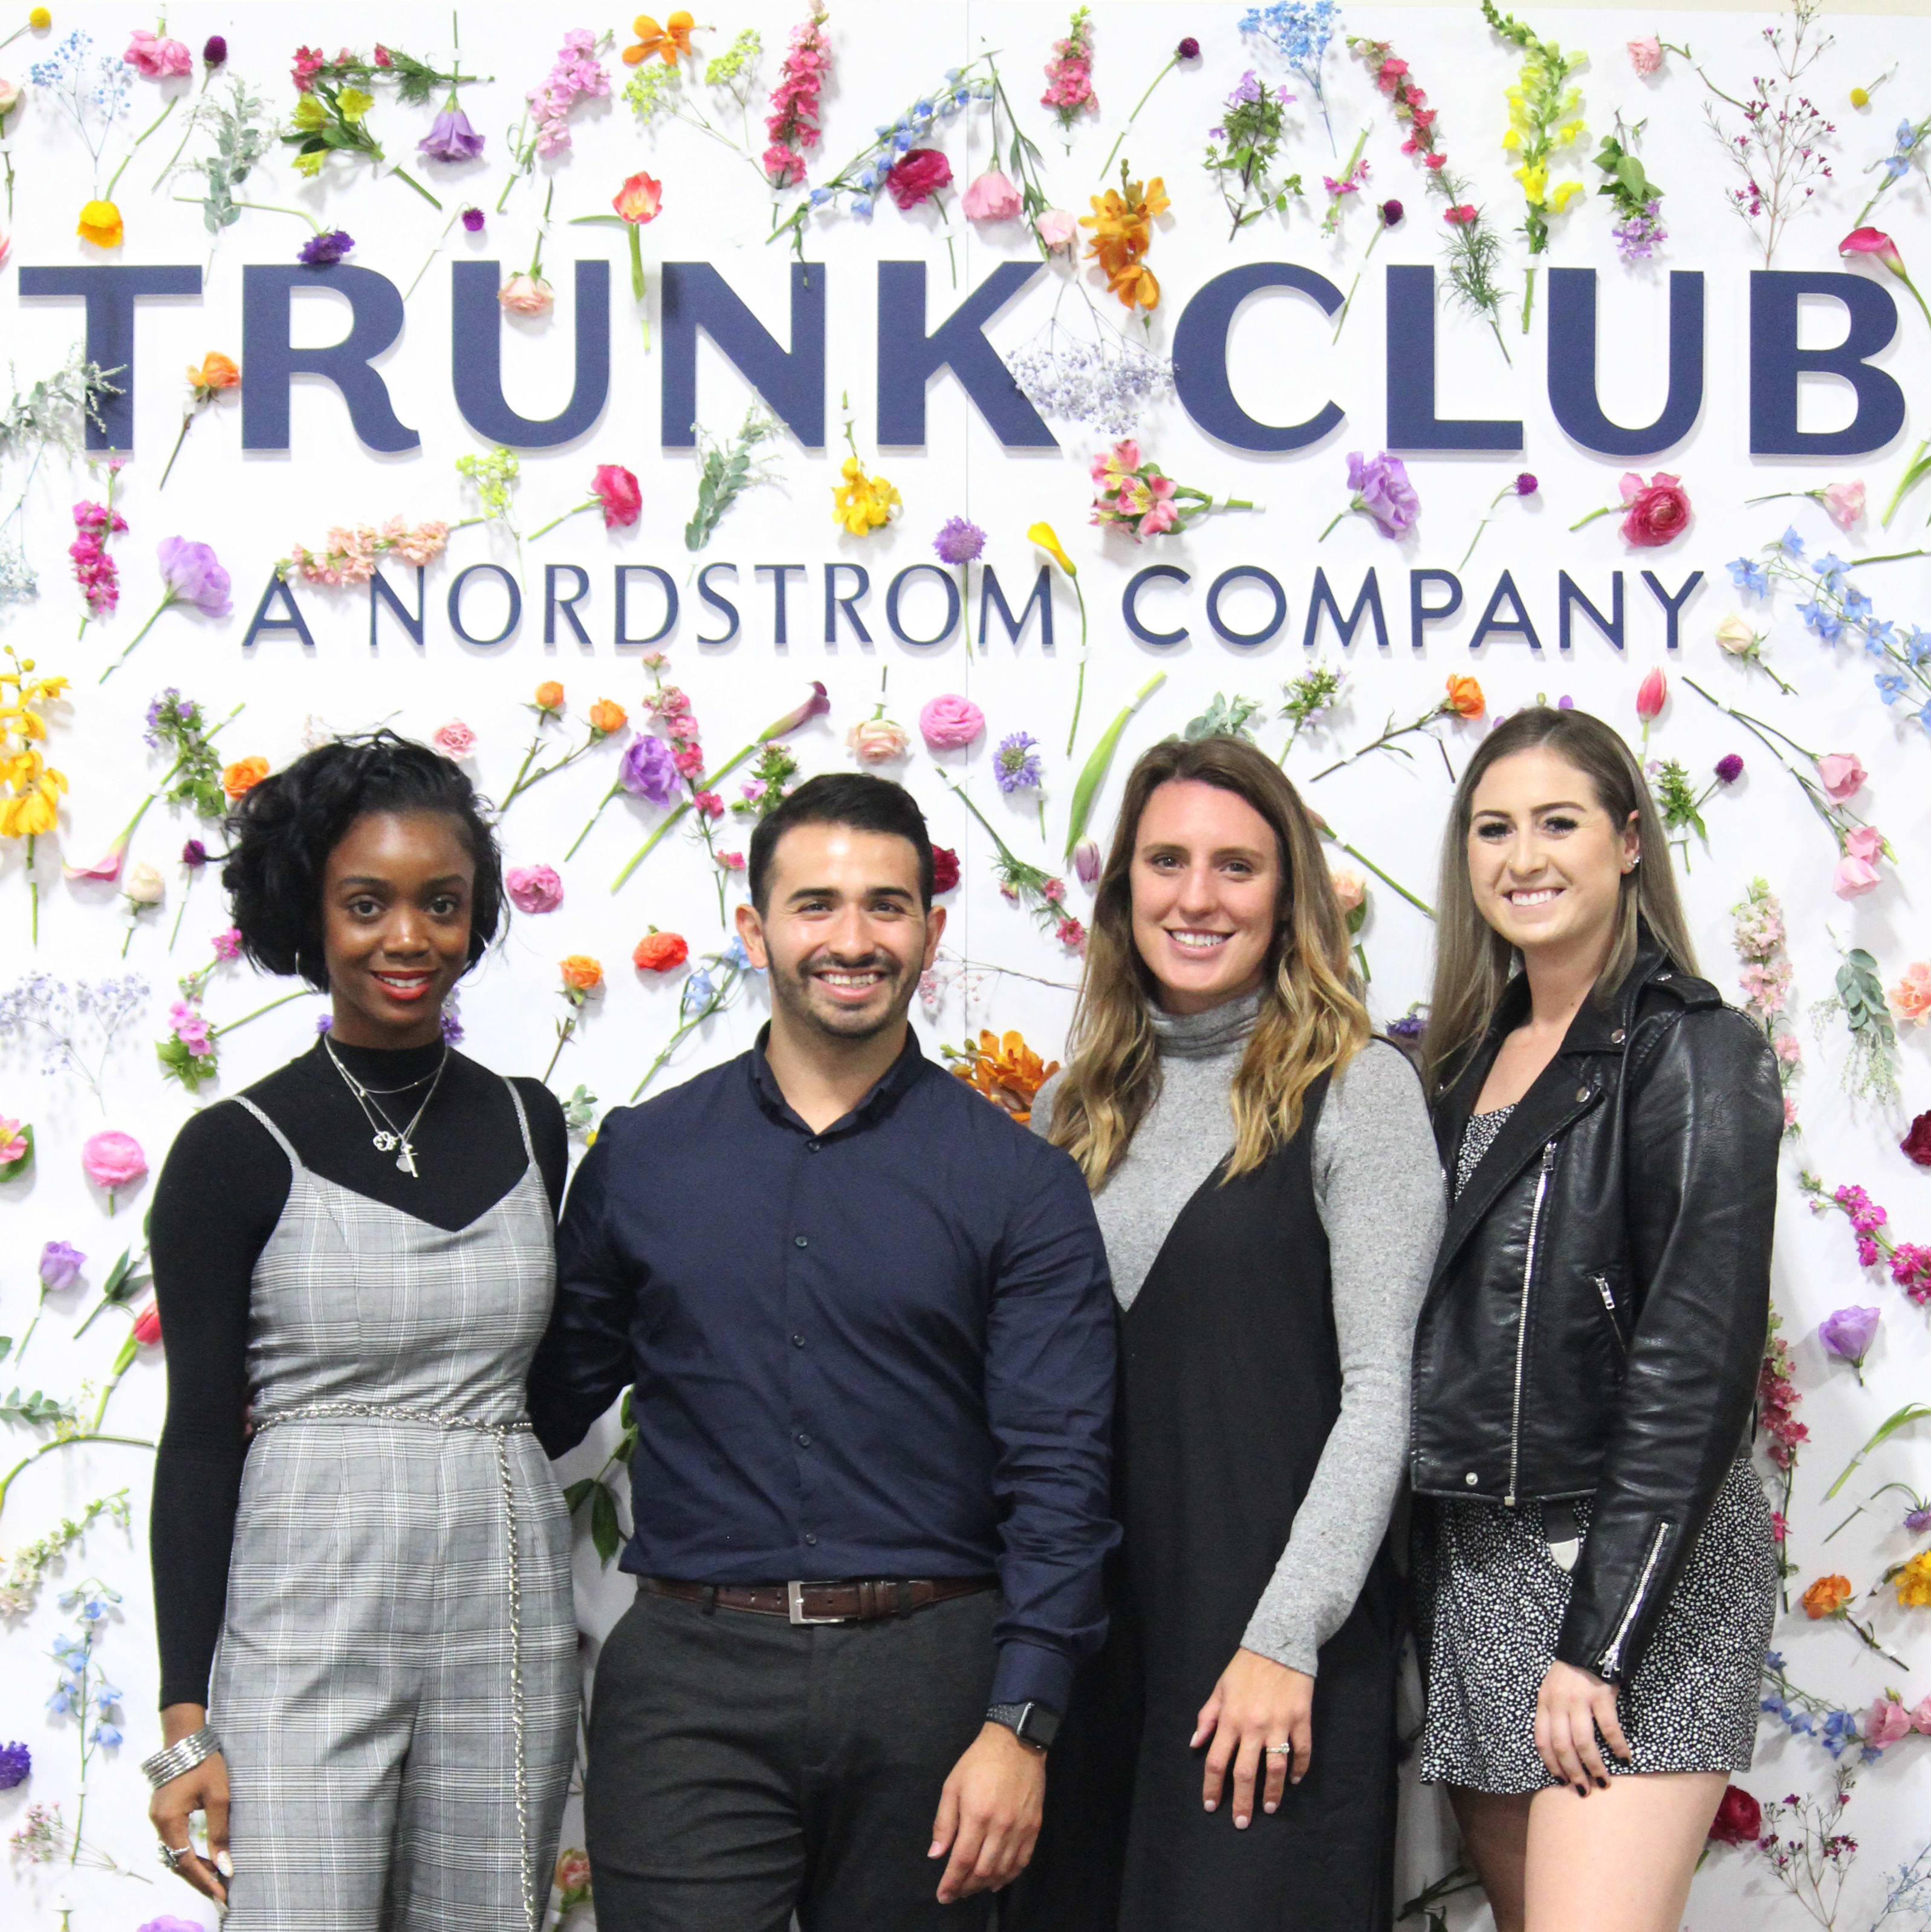 Group of four in front of a Nordstrom Trunk Club Instagram wall covered in flowers.